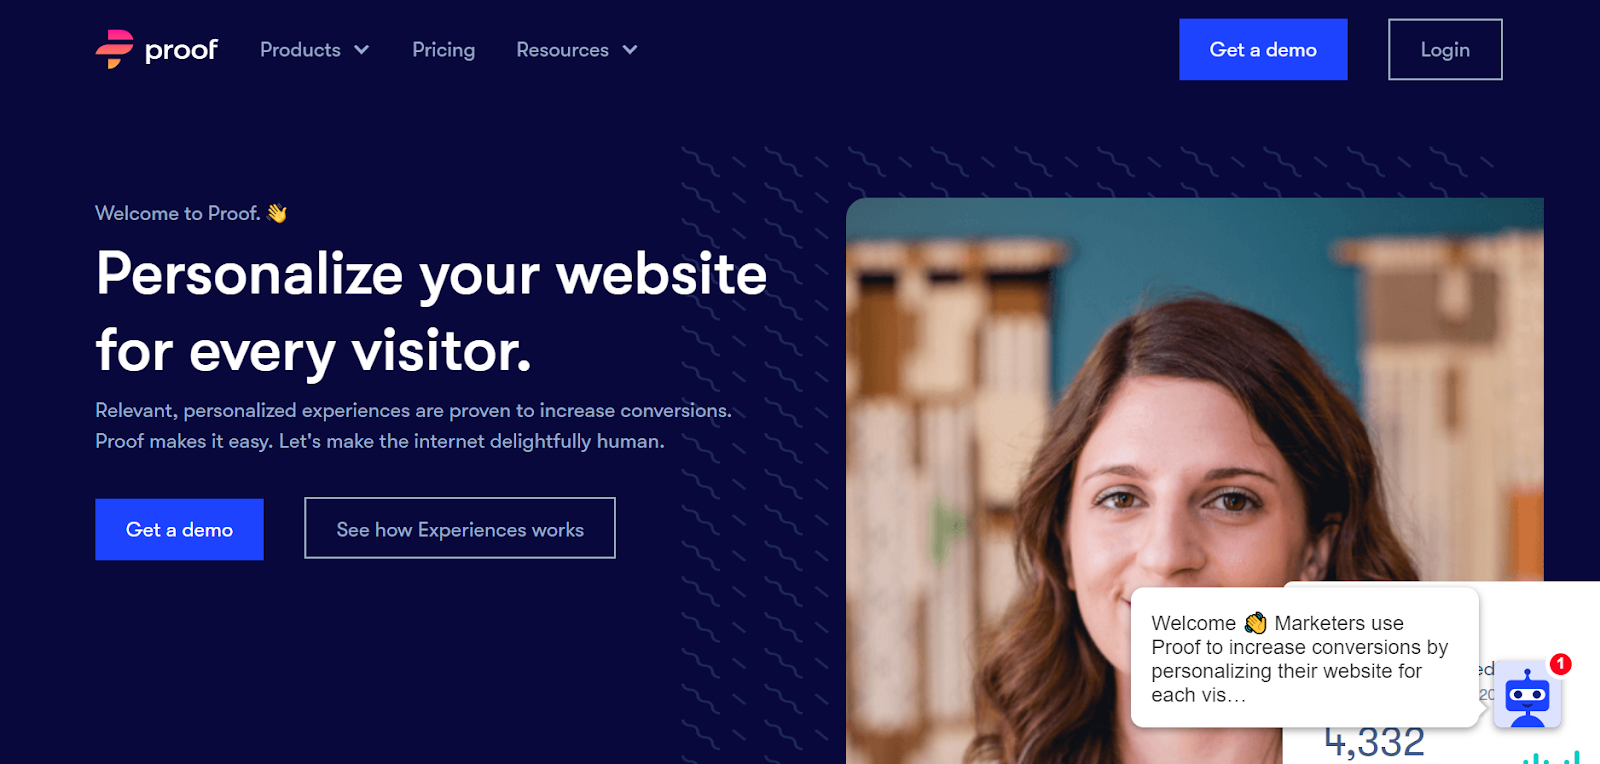 conversion rate optimization tools for personalization